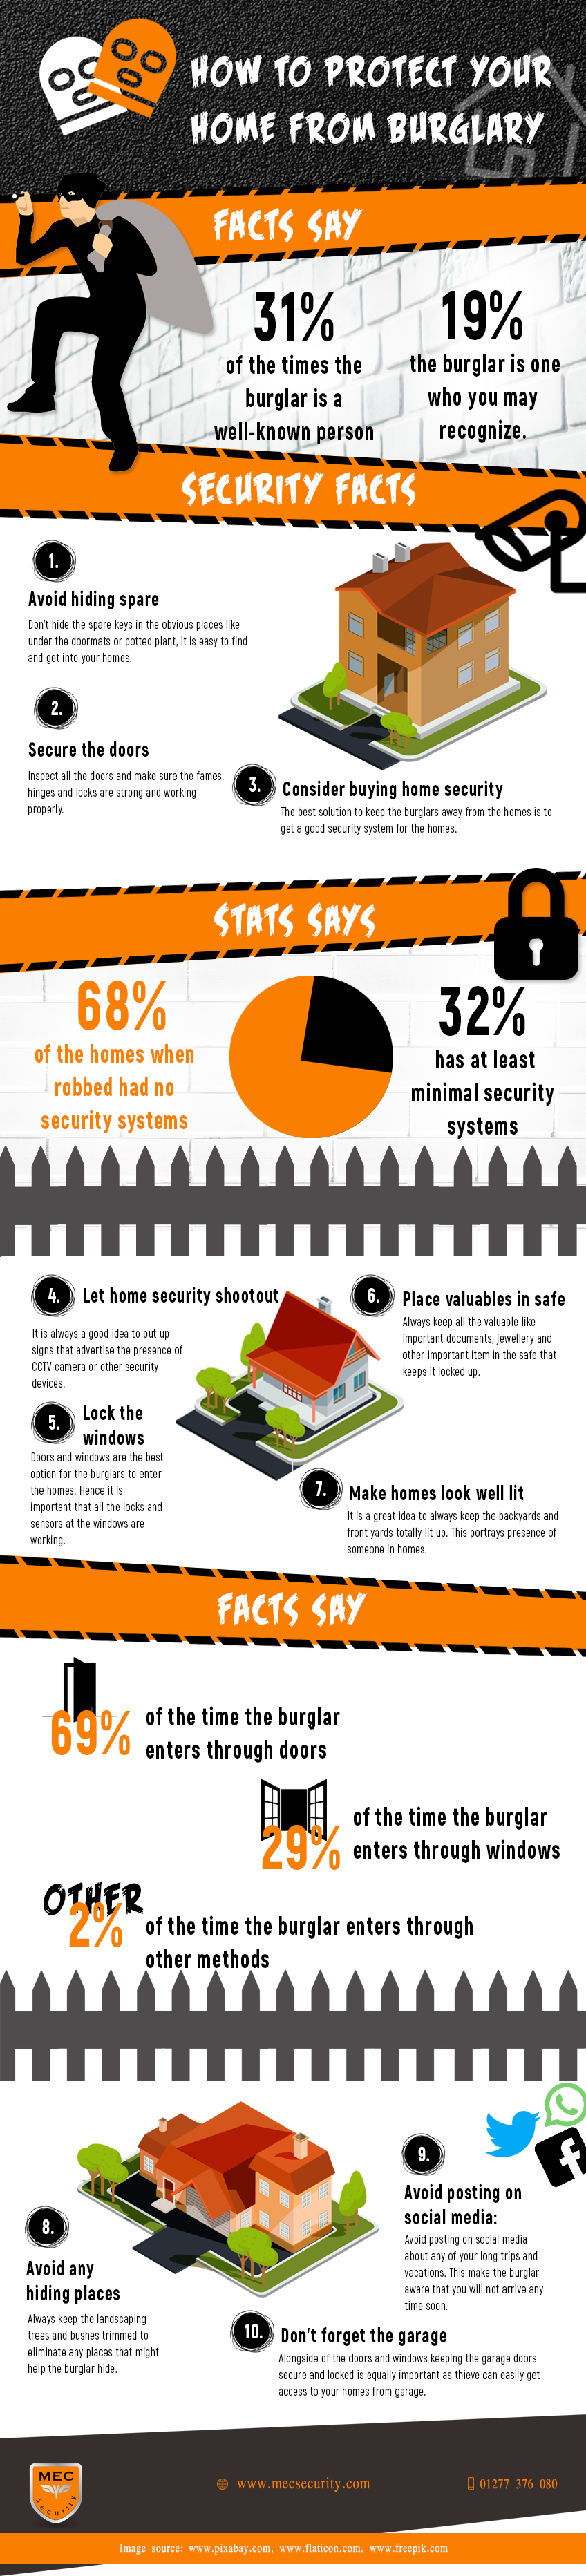 protect your home from burglary